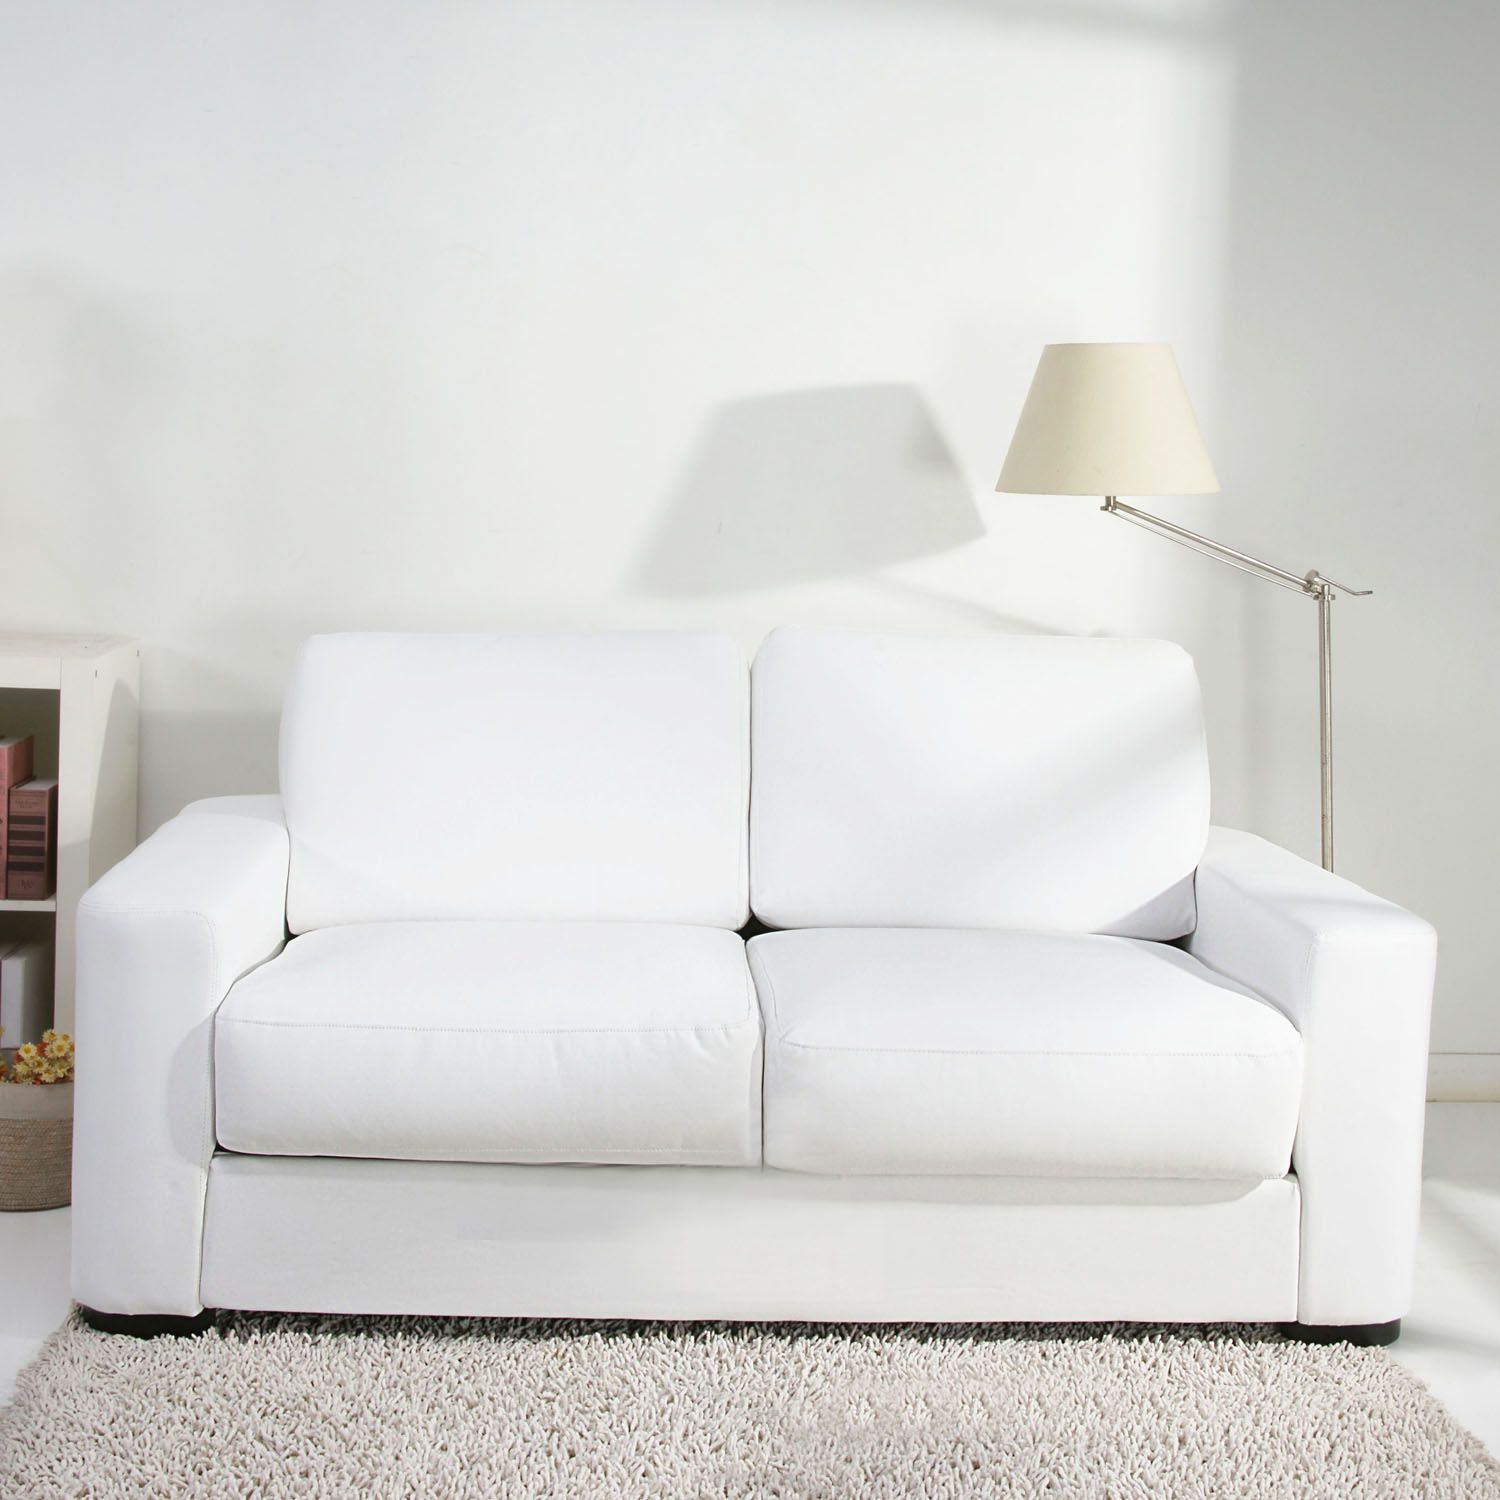 white leather furniture 6 easy steps on cleaning your white sofa cleaning 21995 | 7d9bdf668f999ec5f1661197f0bb8826